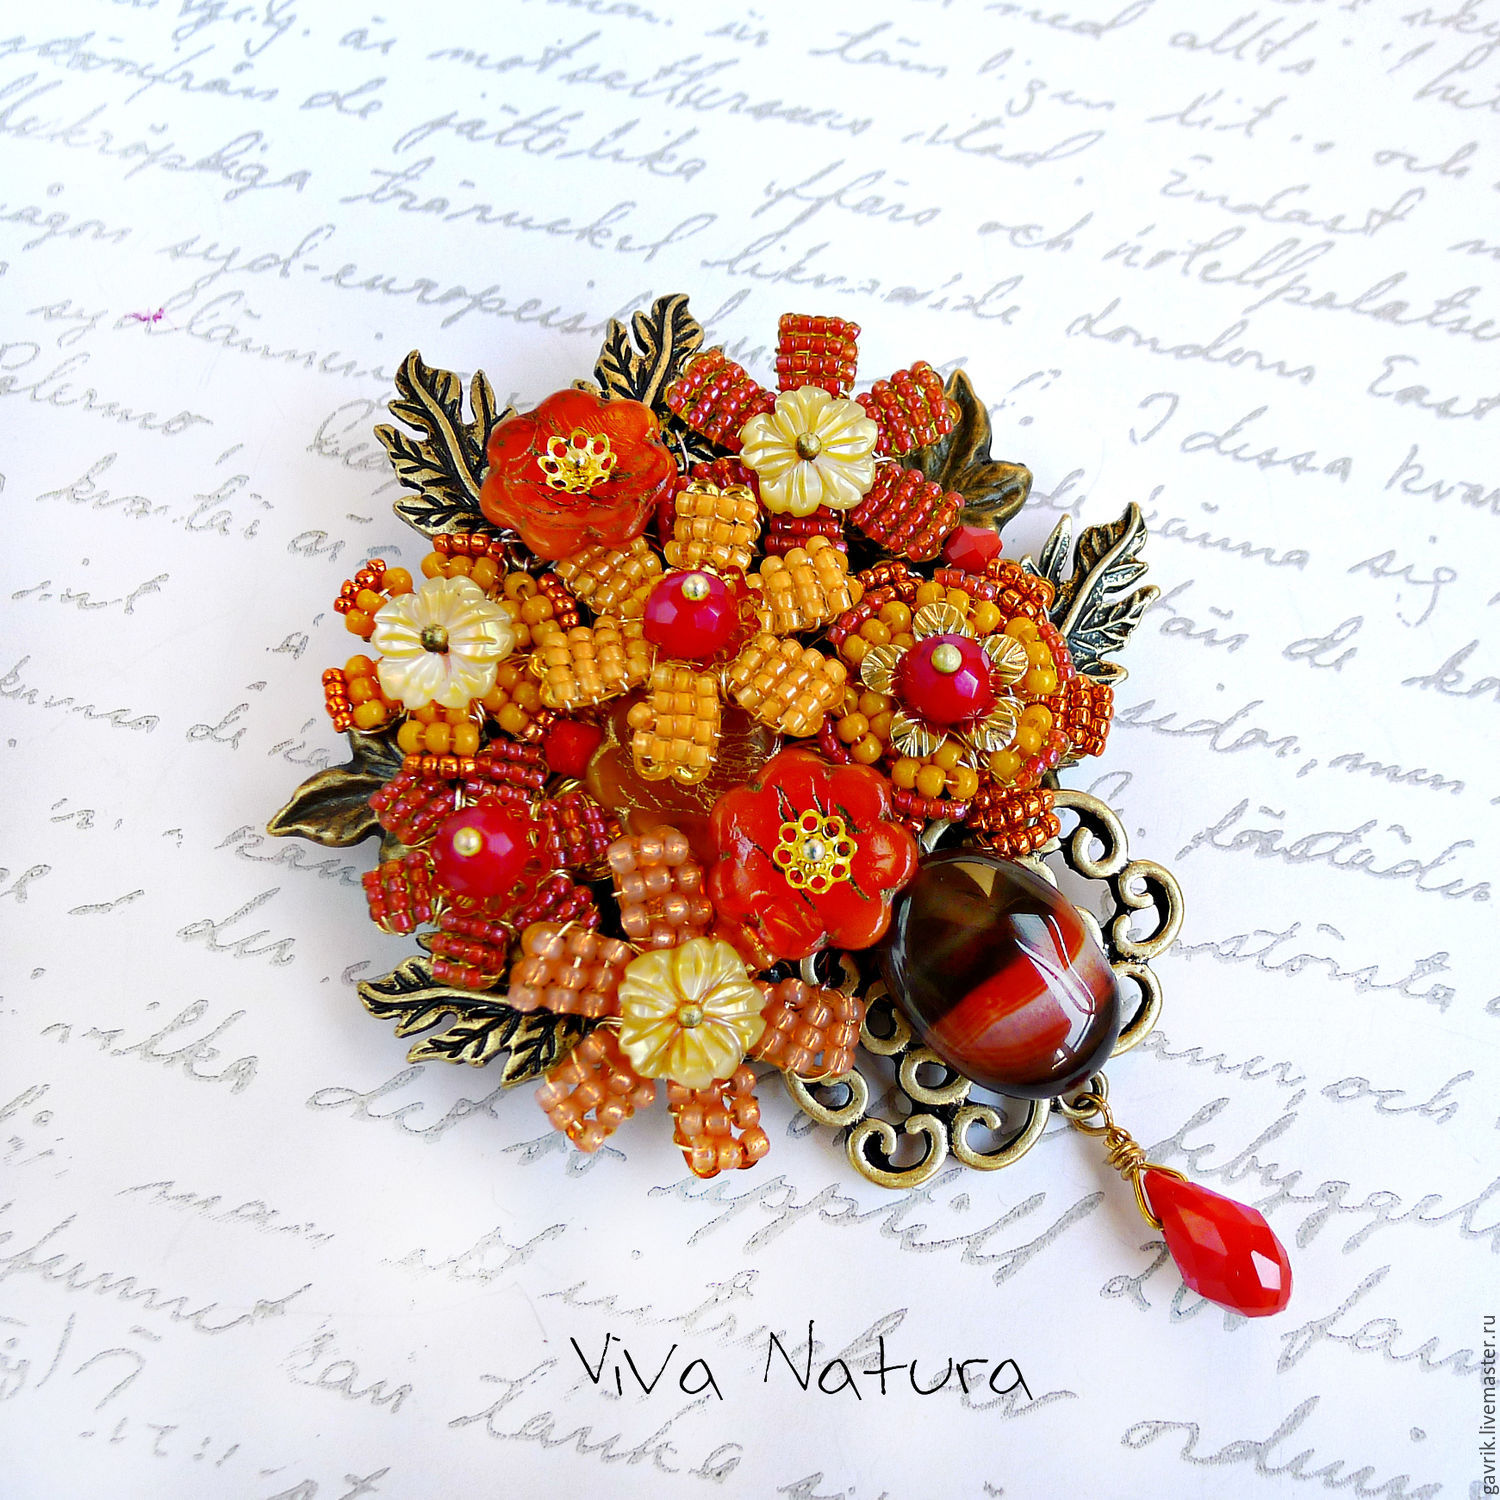 Brooch - bunch of flowers. Handmade brooch, handmade jewelry. Vintage style. Brooch for dress, brooch for costume, brooch for scarf.